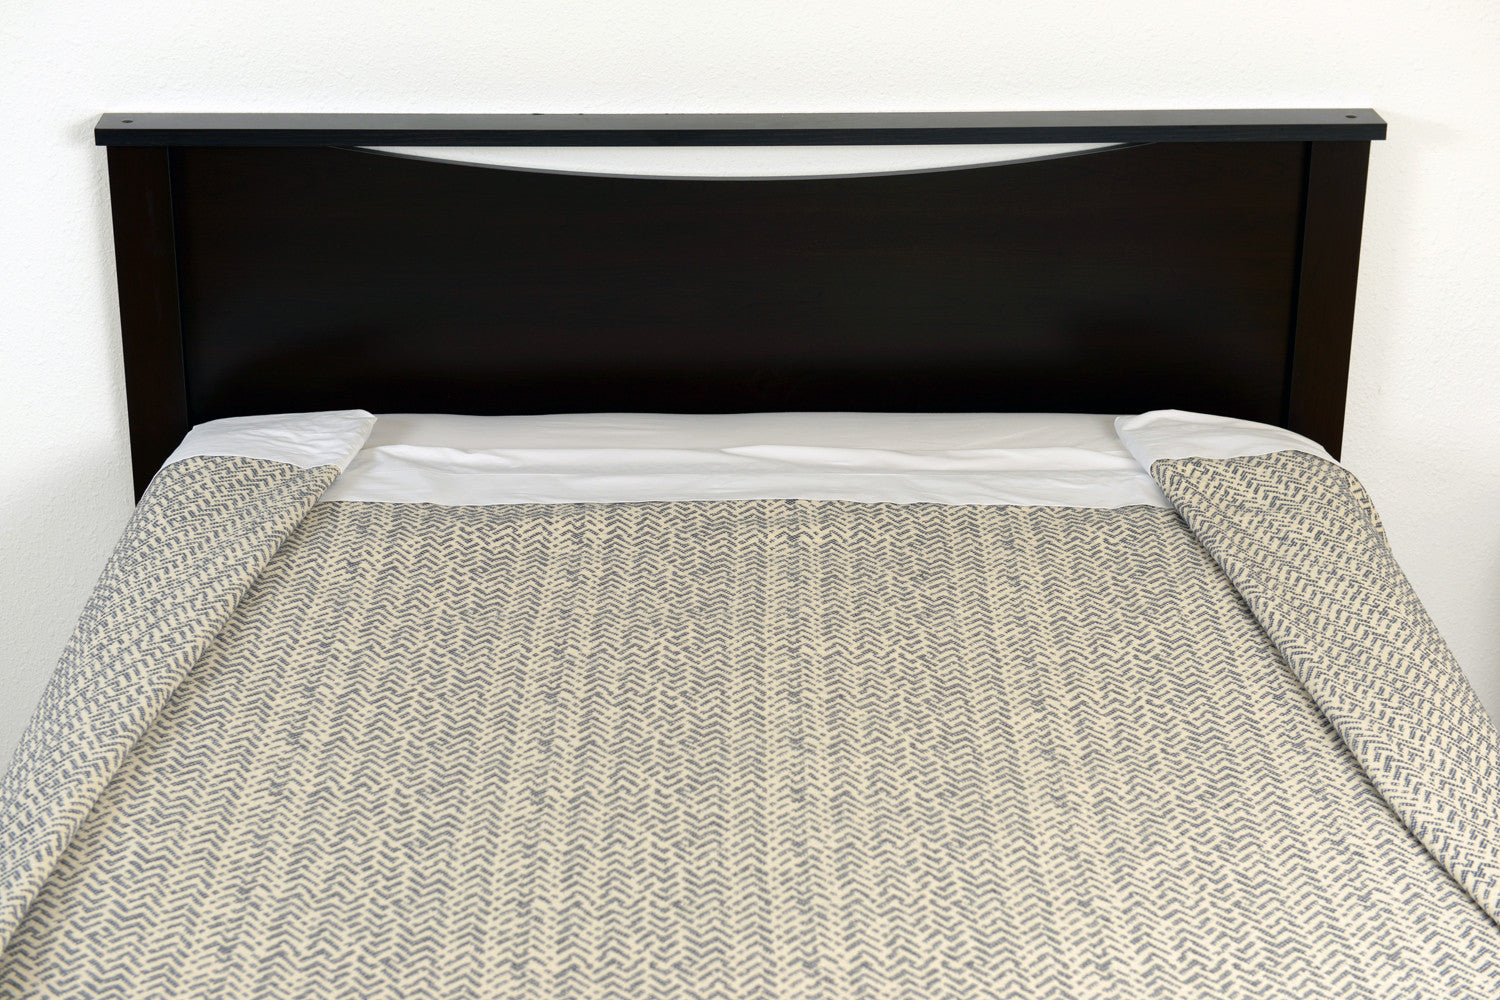 Top foot end view with folds. Netting oversized cotton blanket, grey/ecru. Excess Comfort/